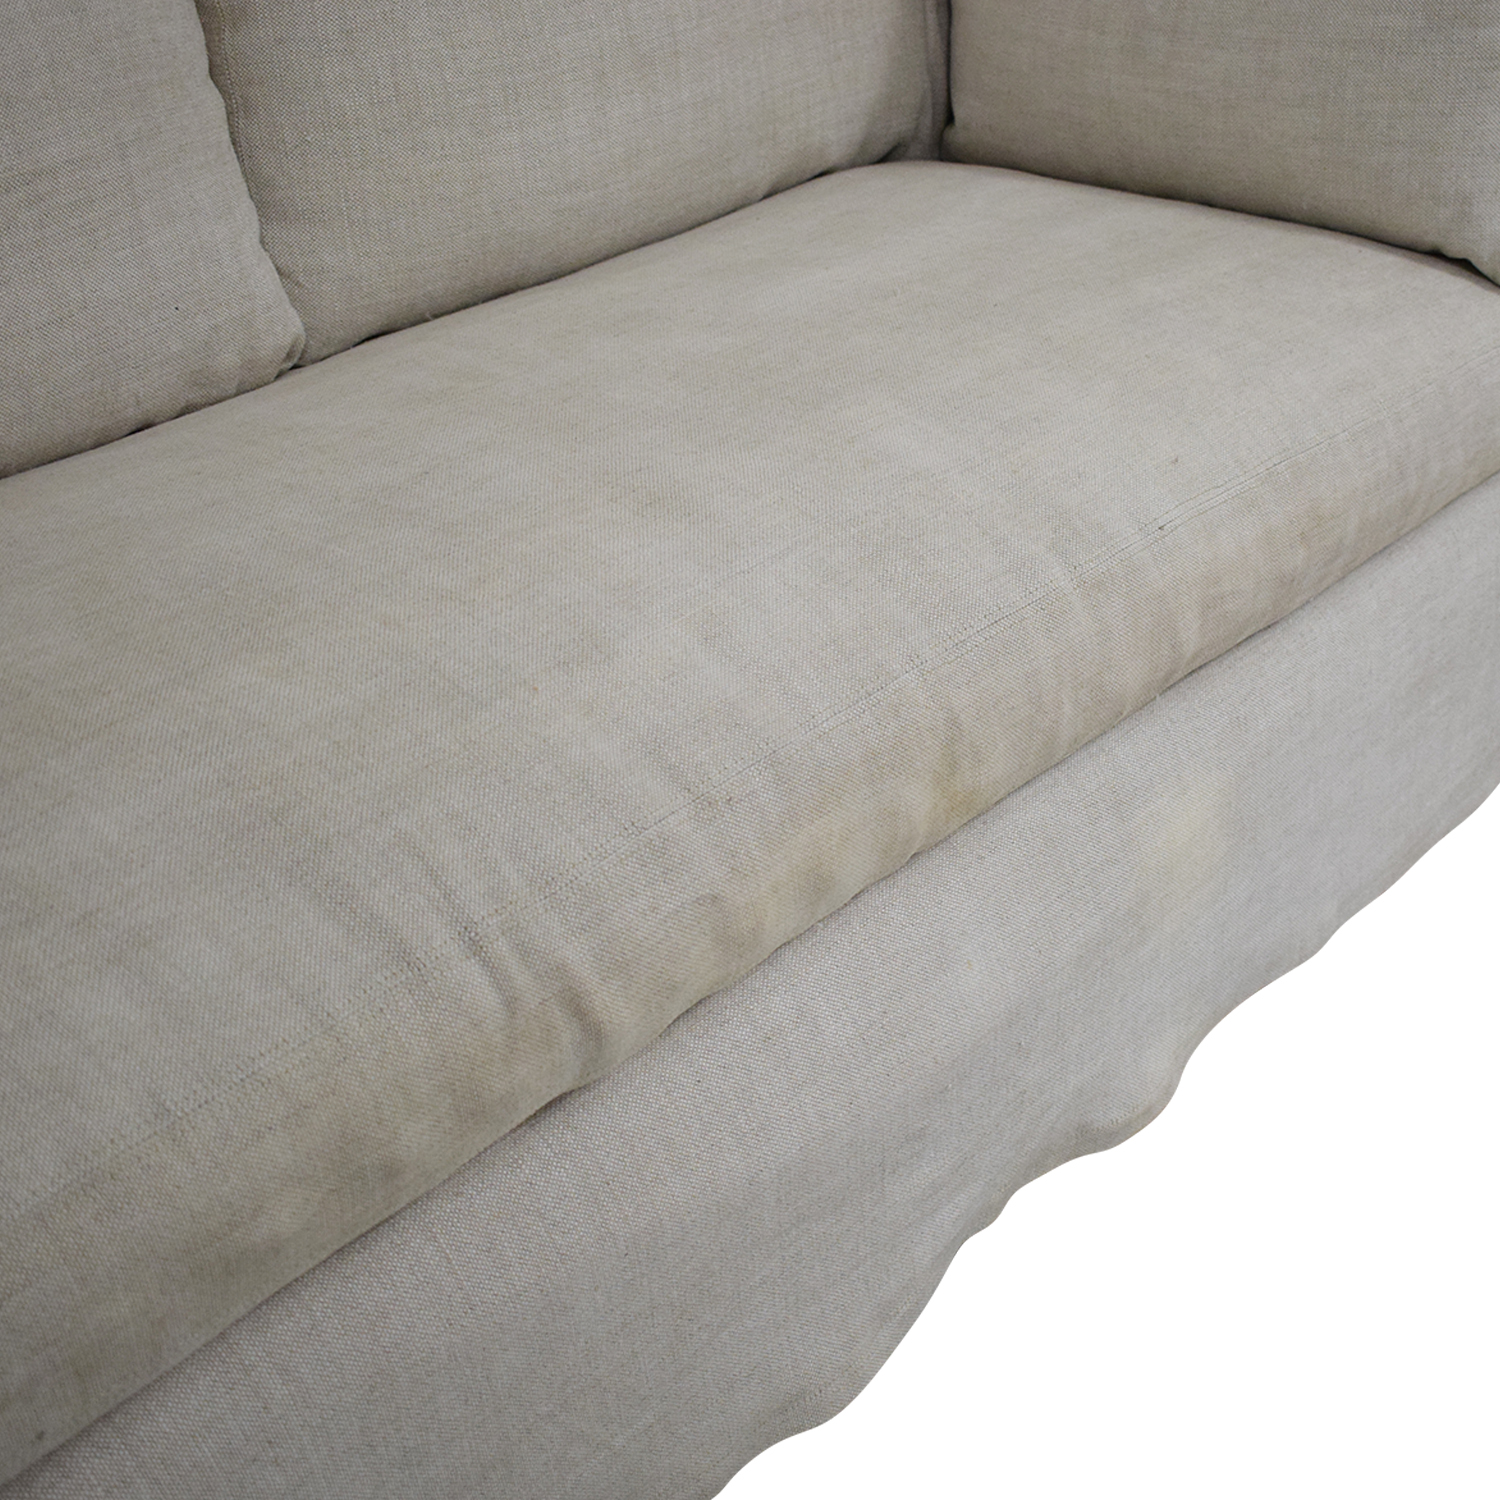 Restoration Hardware Restoration Hardware Belgian Slope Arm Slipcover Sofa ct